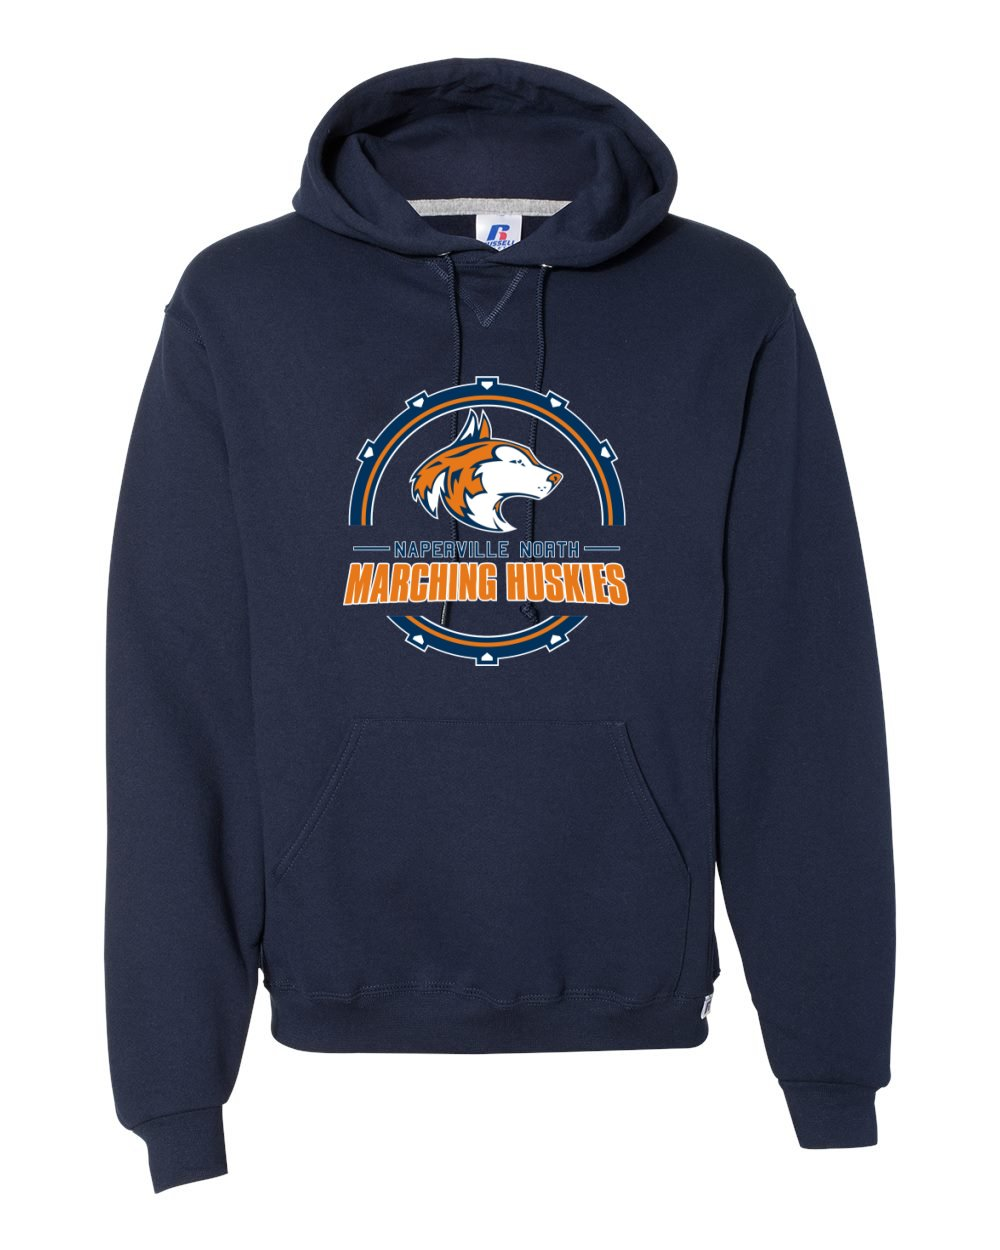 NNHS Marching Band Hoodie